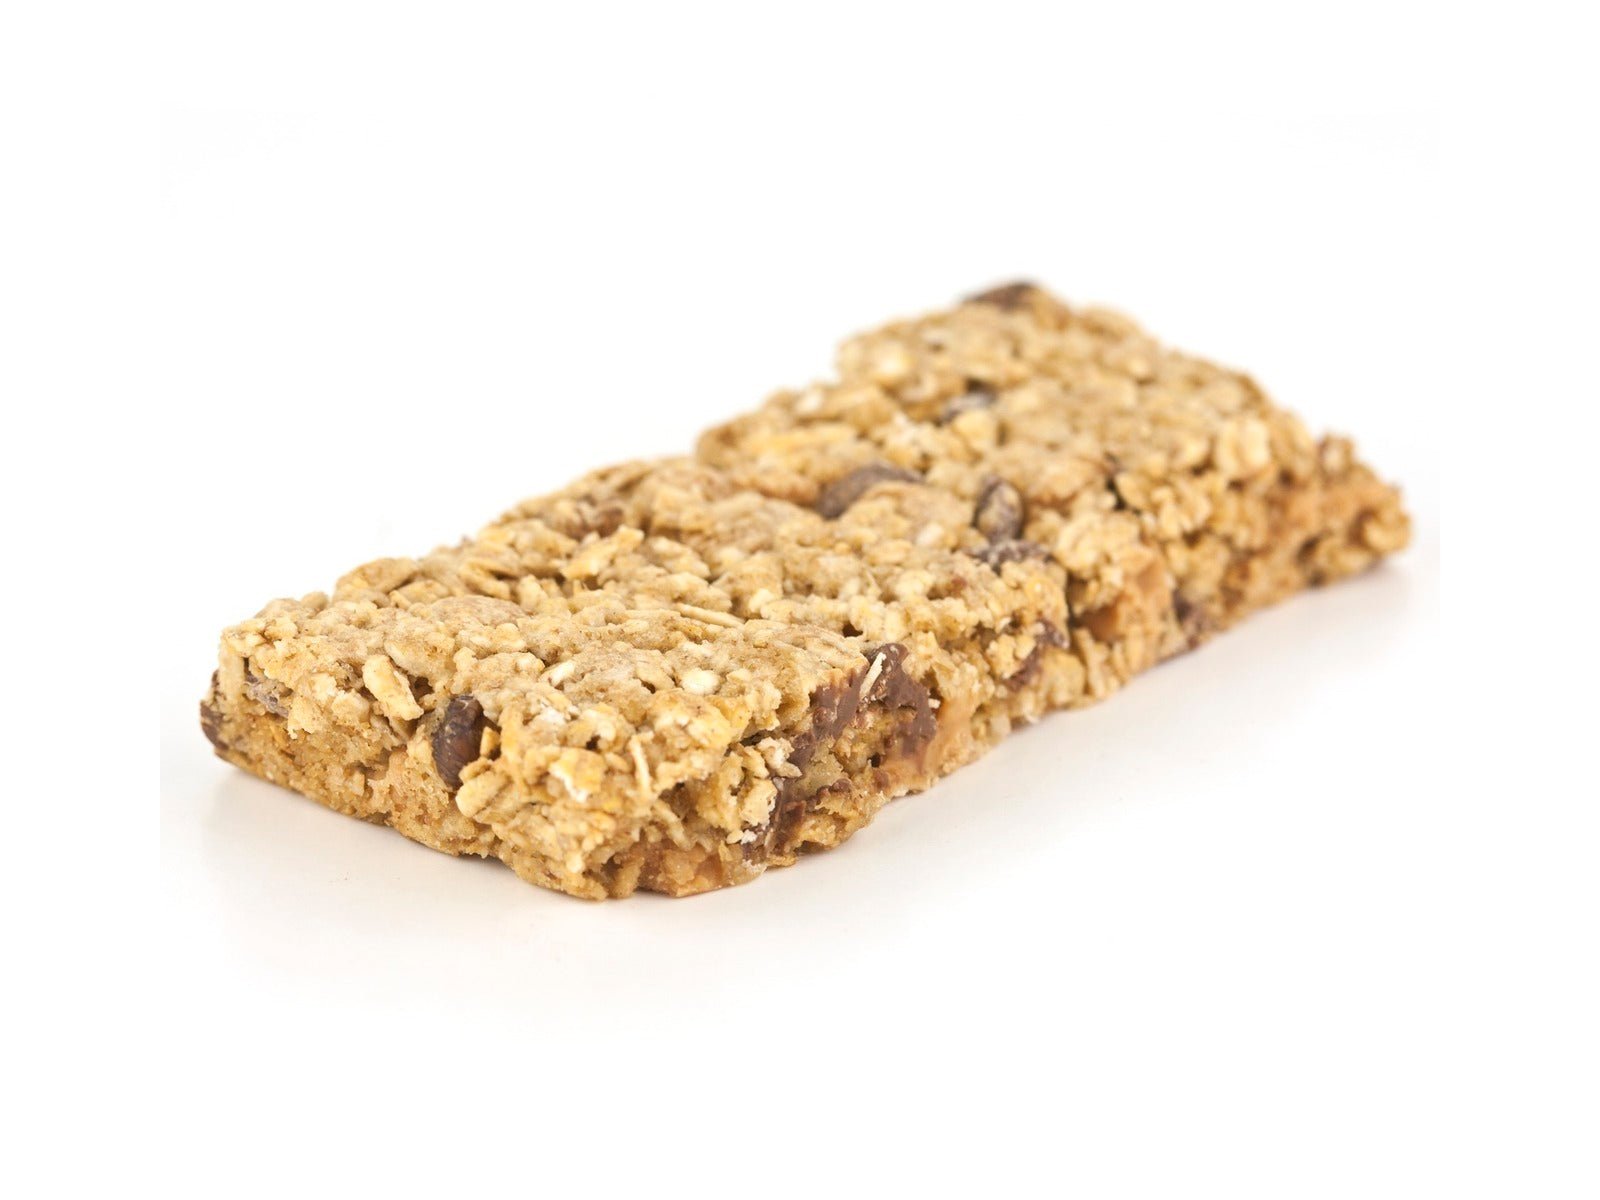 Granola Bar - Peanut Butter Chocolate Chip